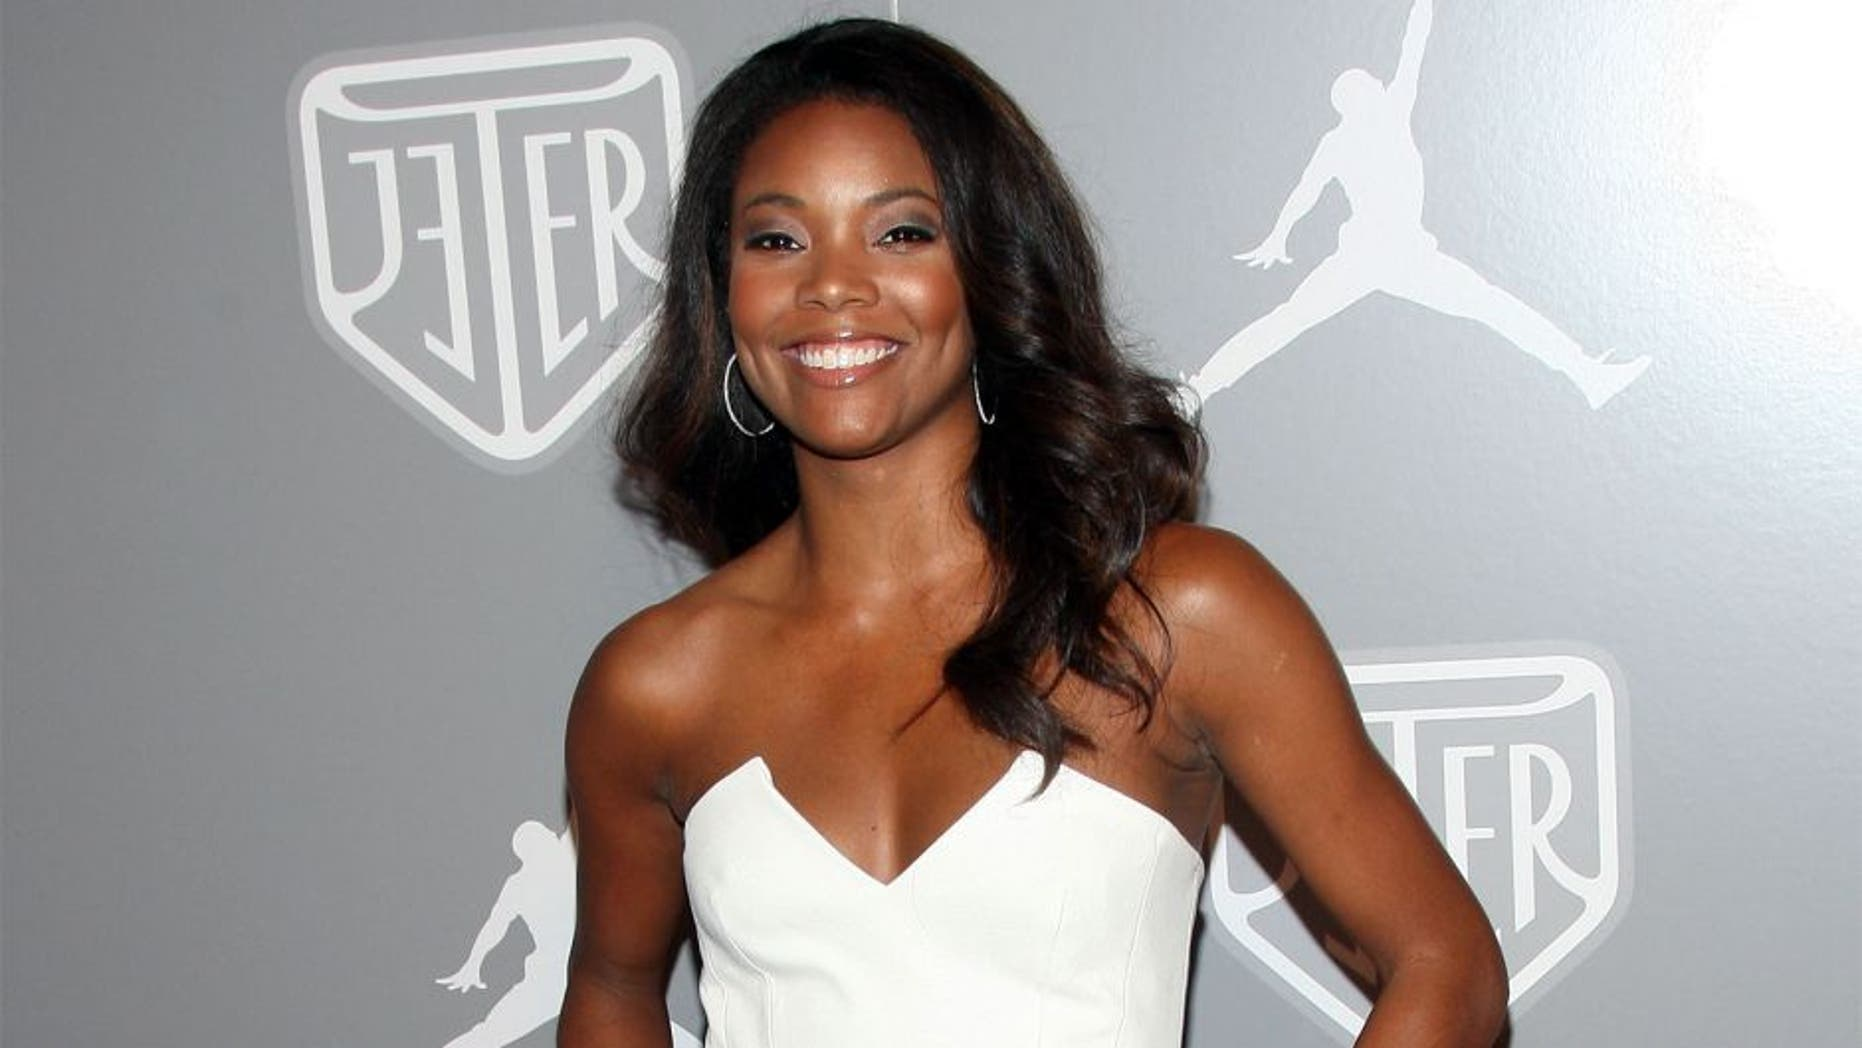 Actress Gabrielle Union celebrates Team Jordan athlete Derek Jeter during All-Star week at an exclusive party held at Marquee in New York City on July 14, 2008. (Photo by Jason Kempin/WireImage)